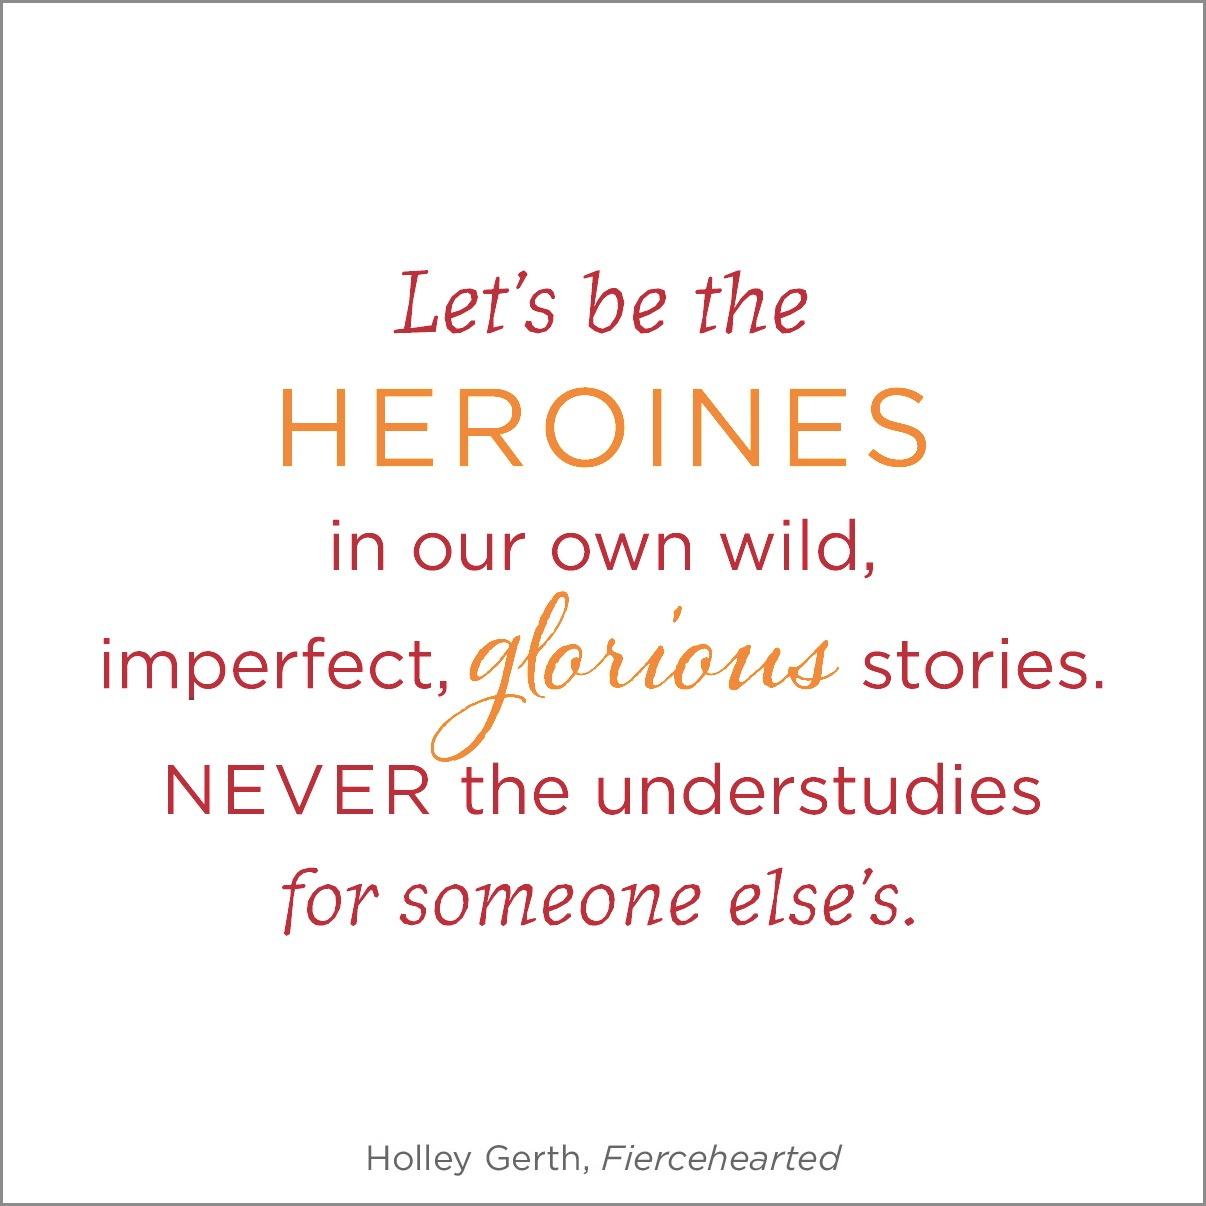 Let's be the heroines in our own wild, imperfect, glorious stories. Never the understudies for someone else's.